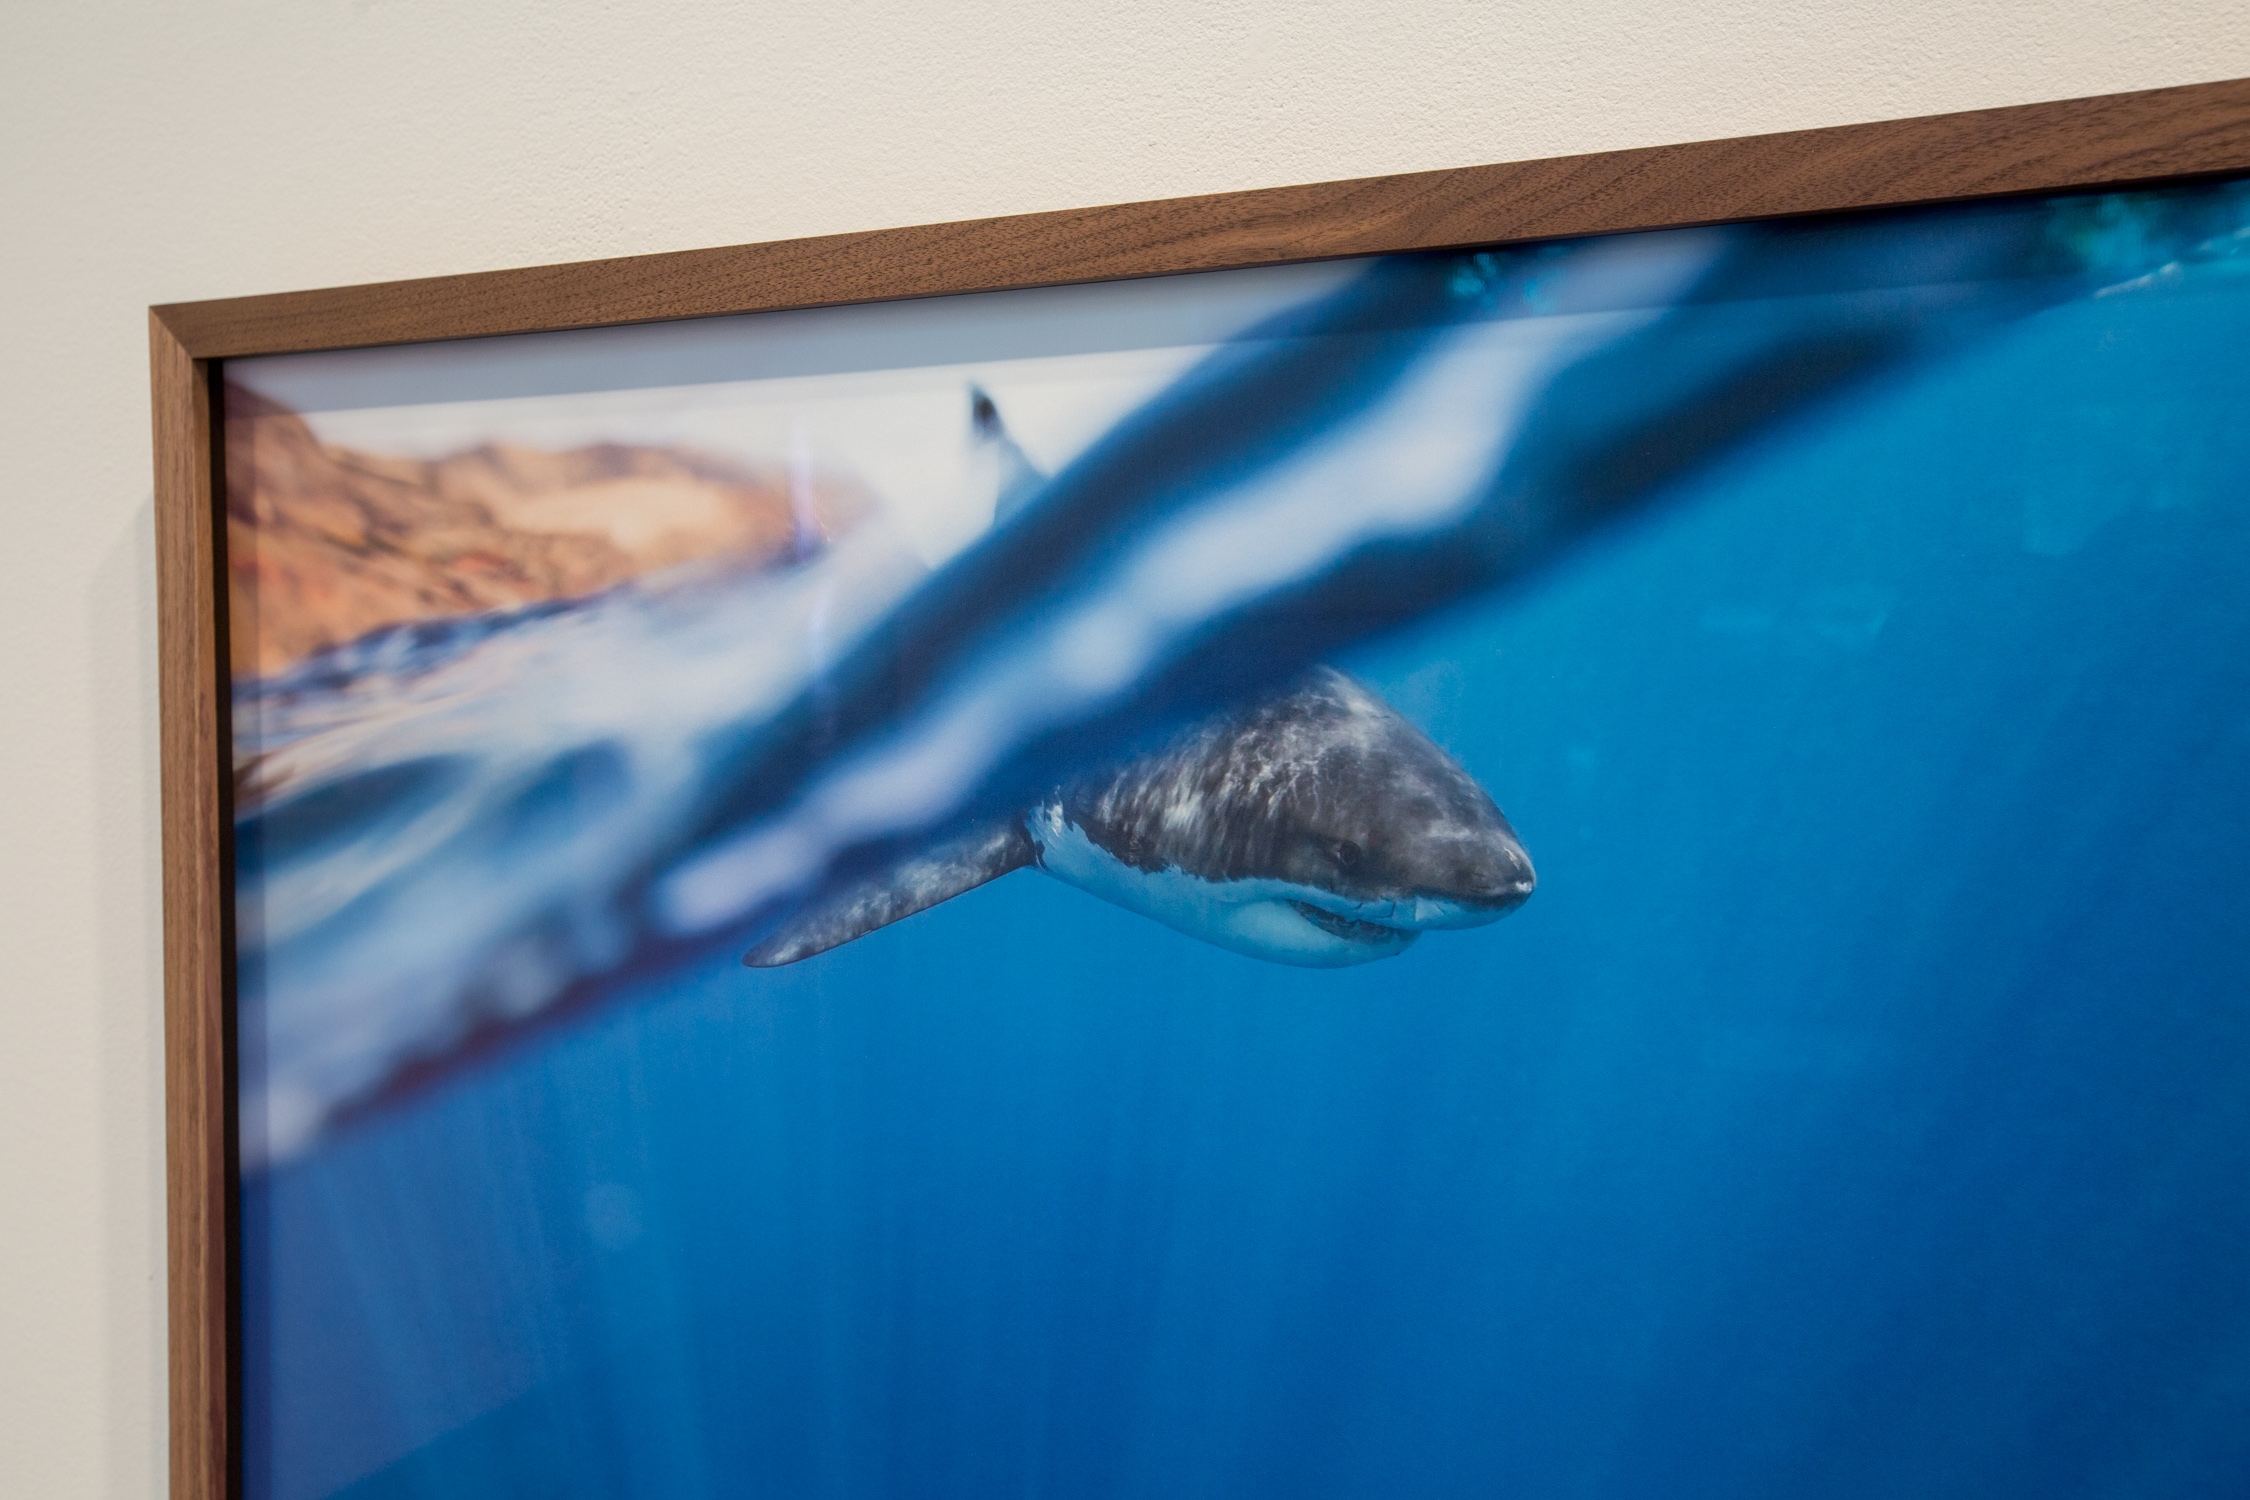 Wildlife at Charles Hartman Fine Art. photos: Corey Arnold.